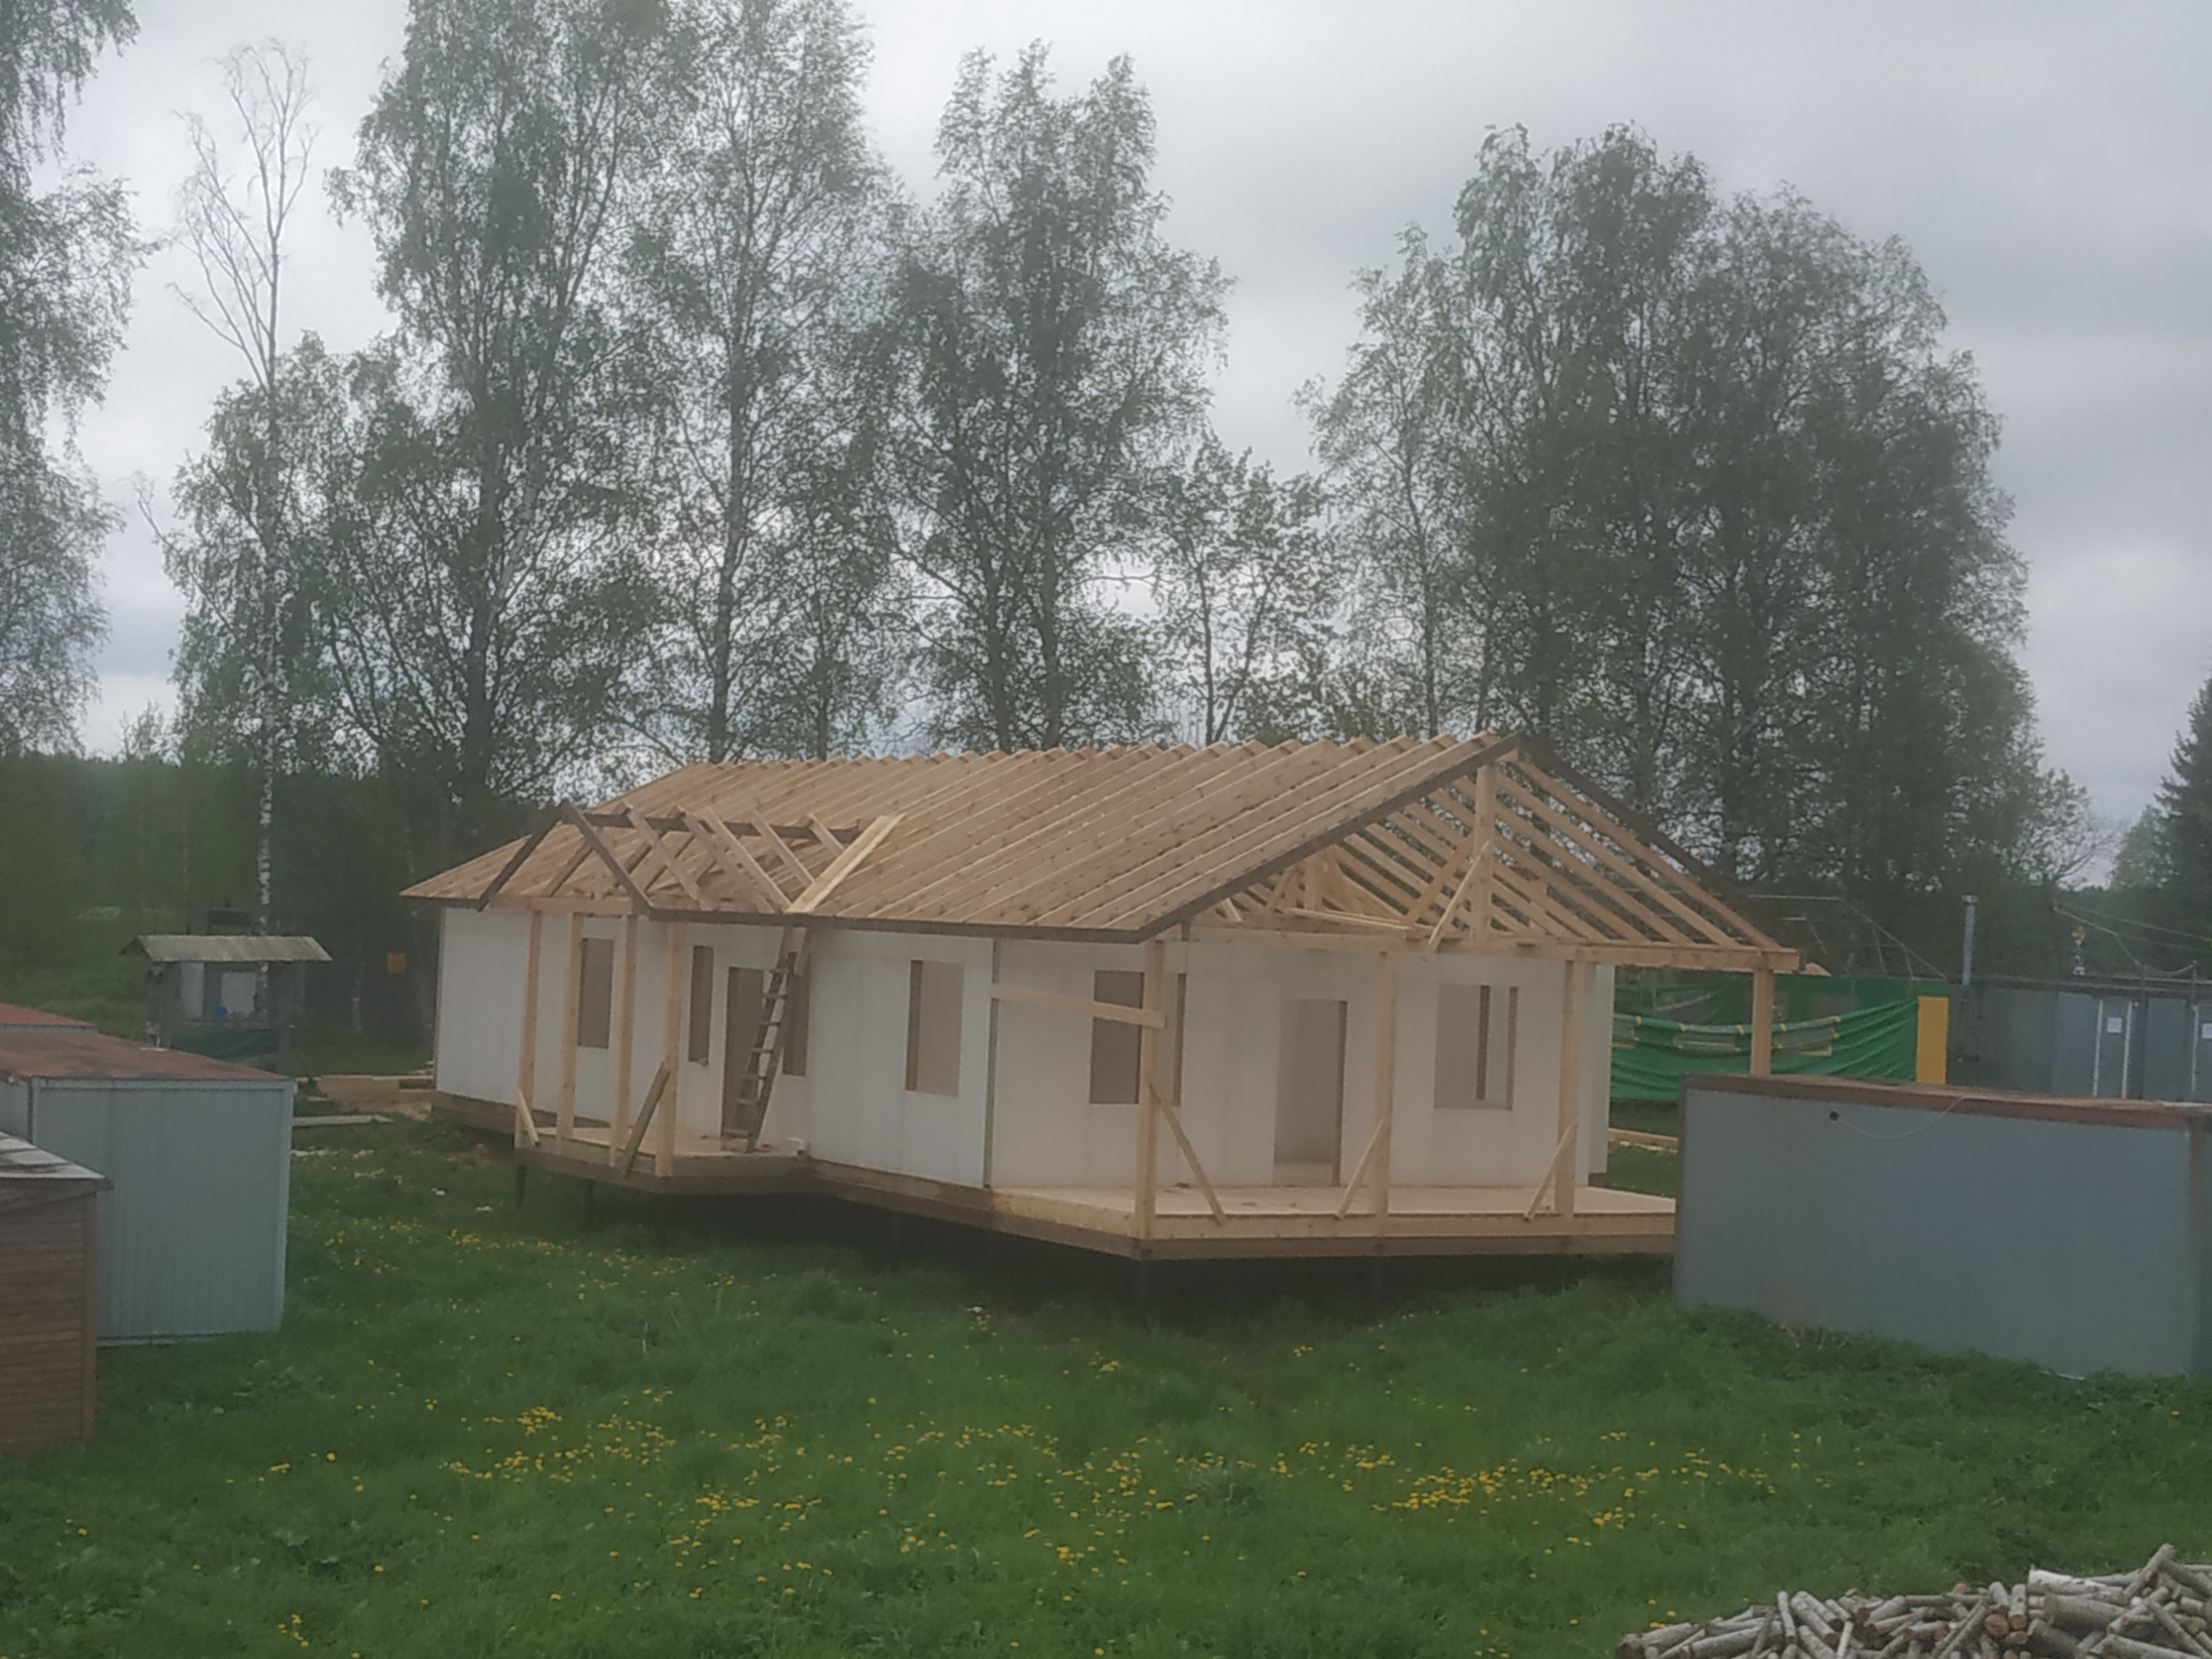 The almost completed roof joist construction for the house for adults with disabilities in Davydovo.